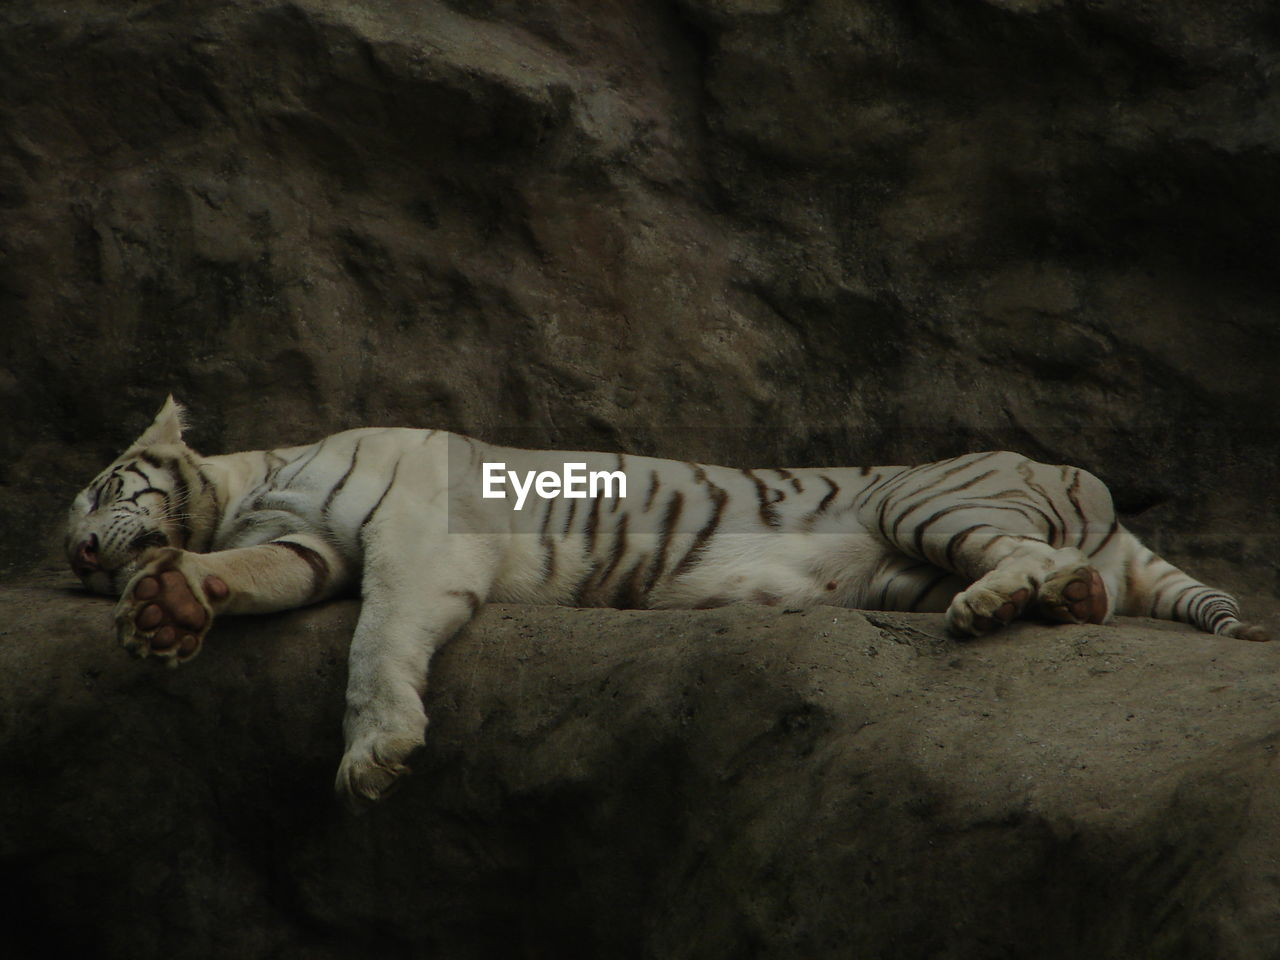 mammal, animal themes, animal, tiger, feline, relaxation, one animal, cat, vertebrate, no people, big cat, pets, lying down, resting, full length, domestic animals, rock, animals in the wild, animal wildlife, rock - object, white tiger